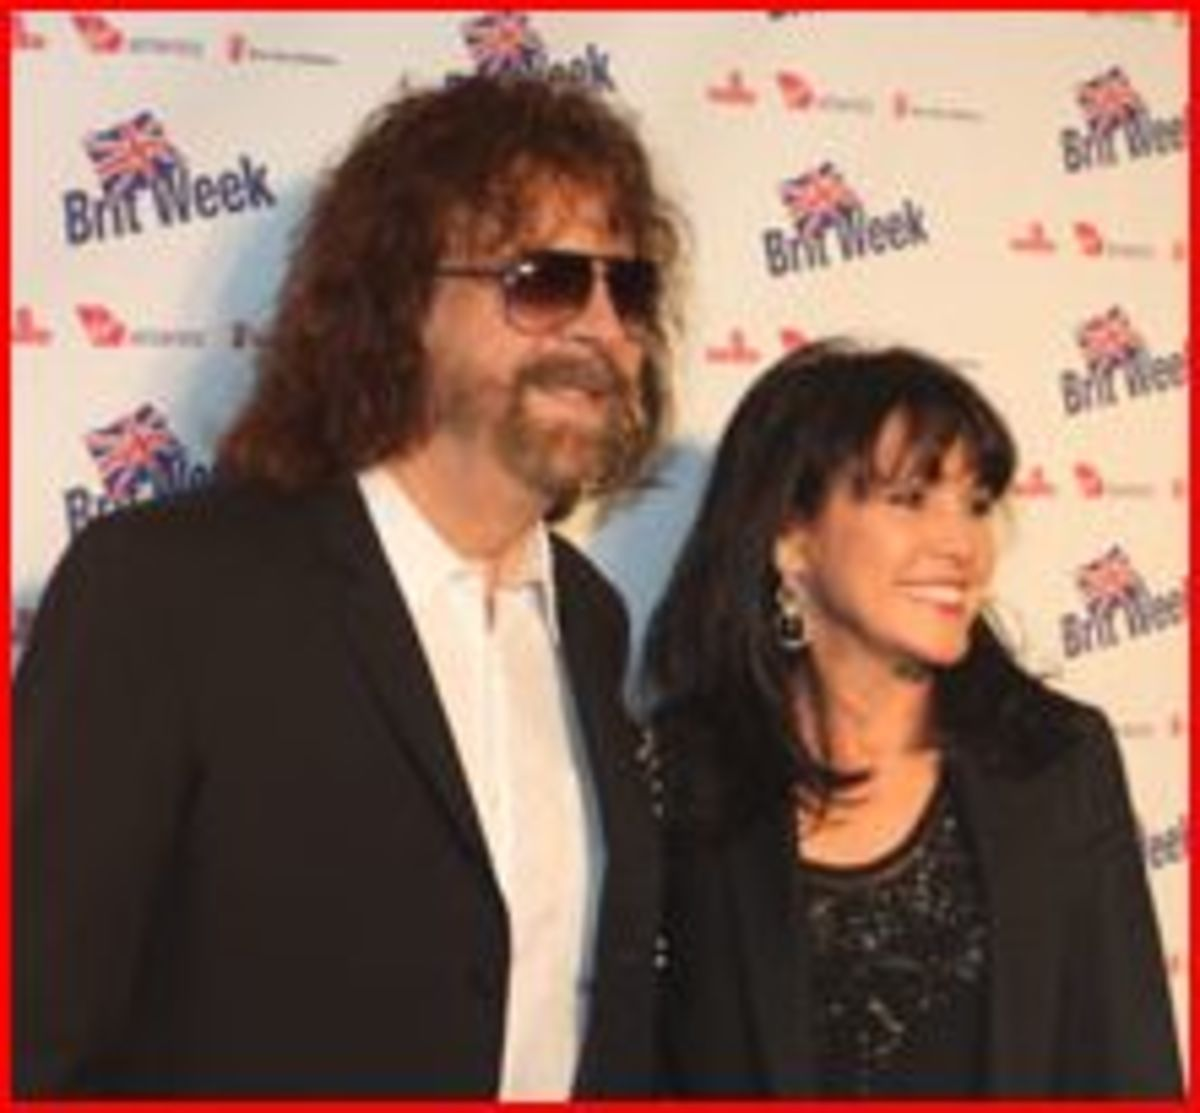 Here he is at an evening charity bash with his lovely wife.